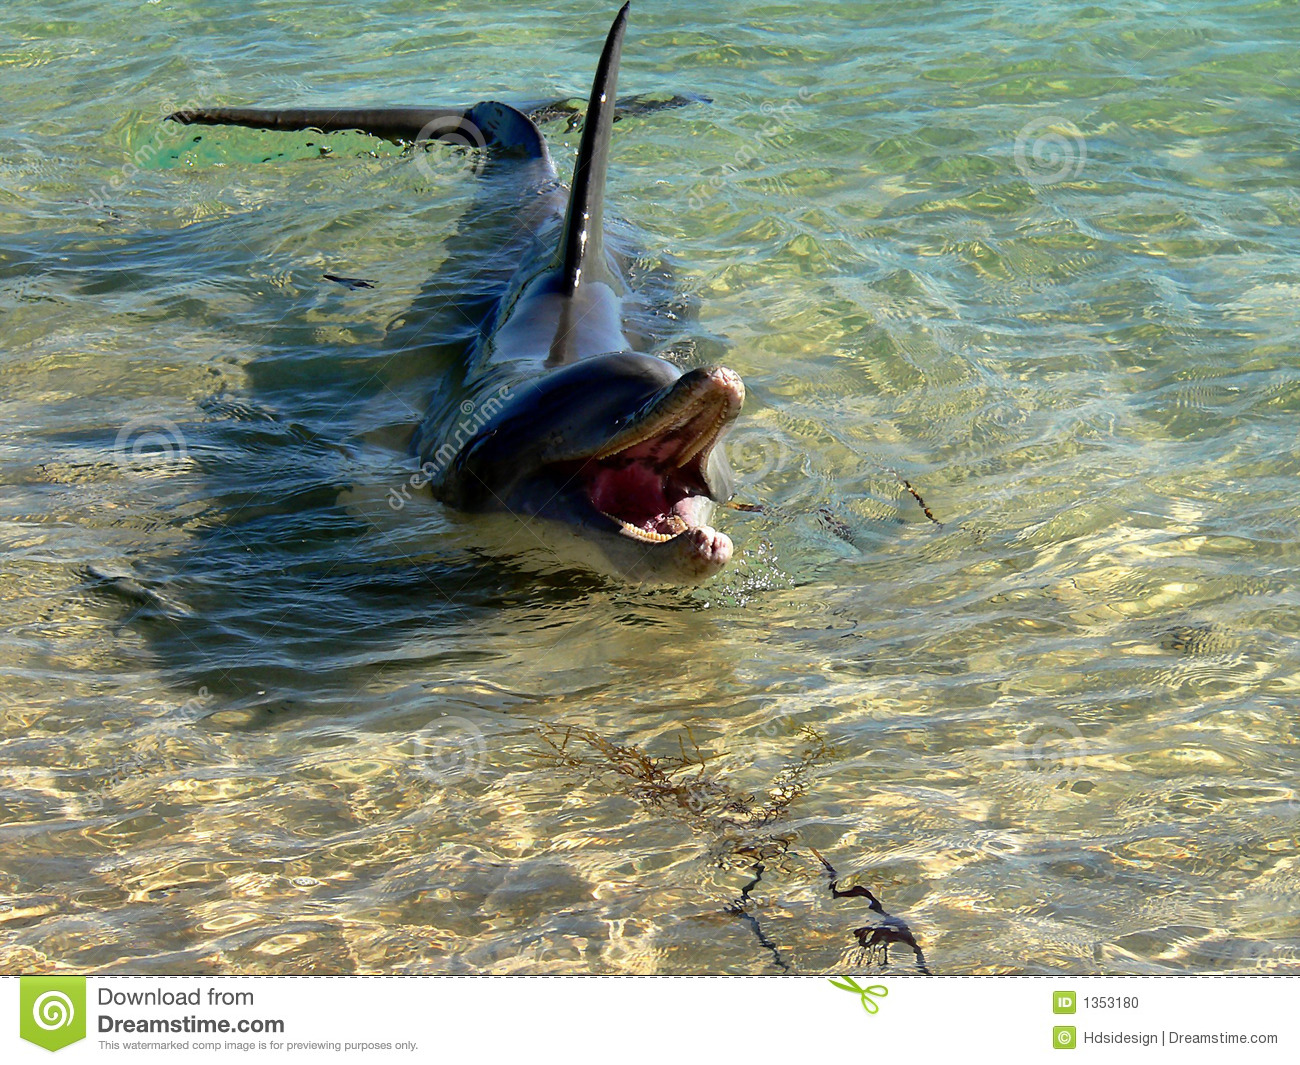 Dolphin In Shallow Water Stock Photo - Image: 1353180